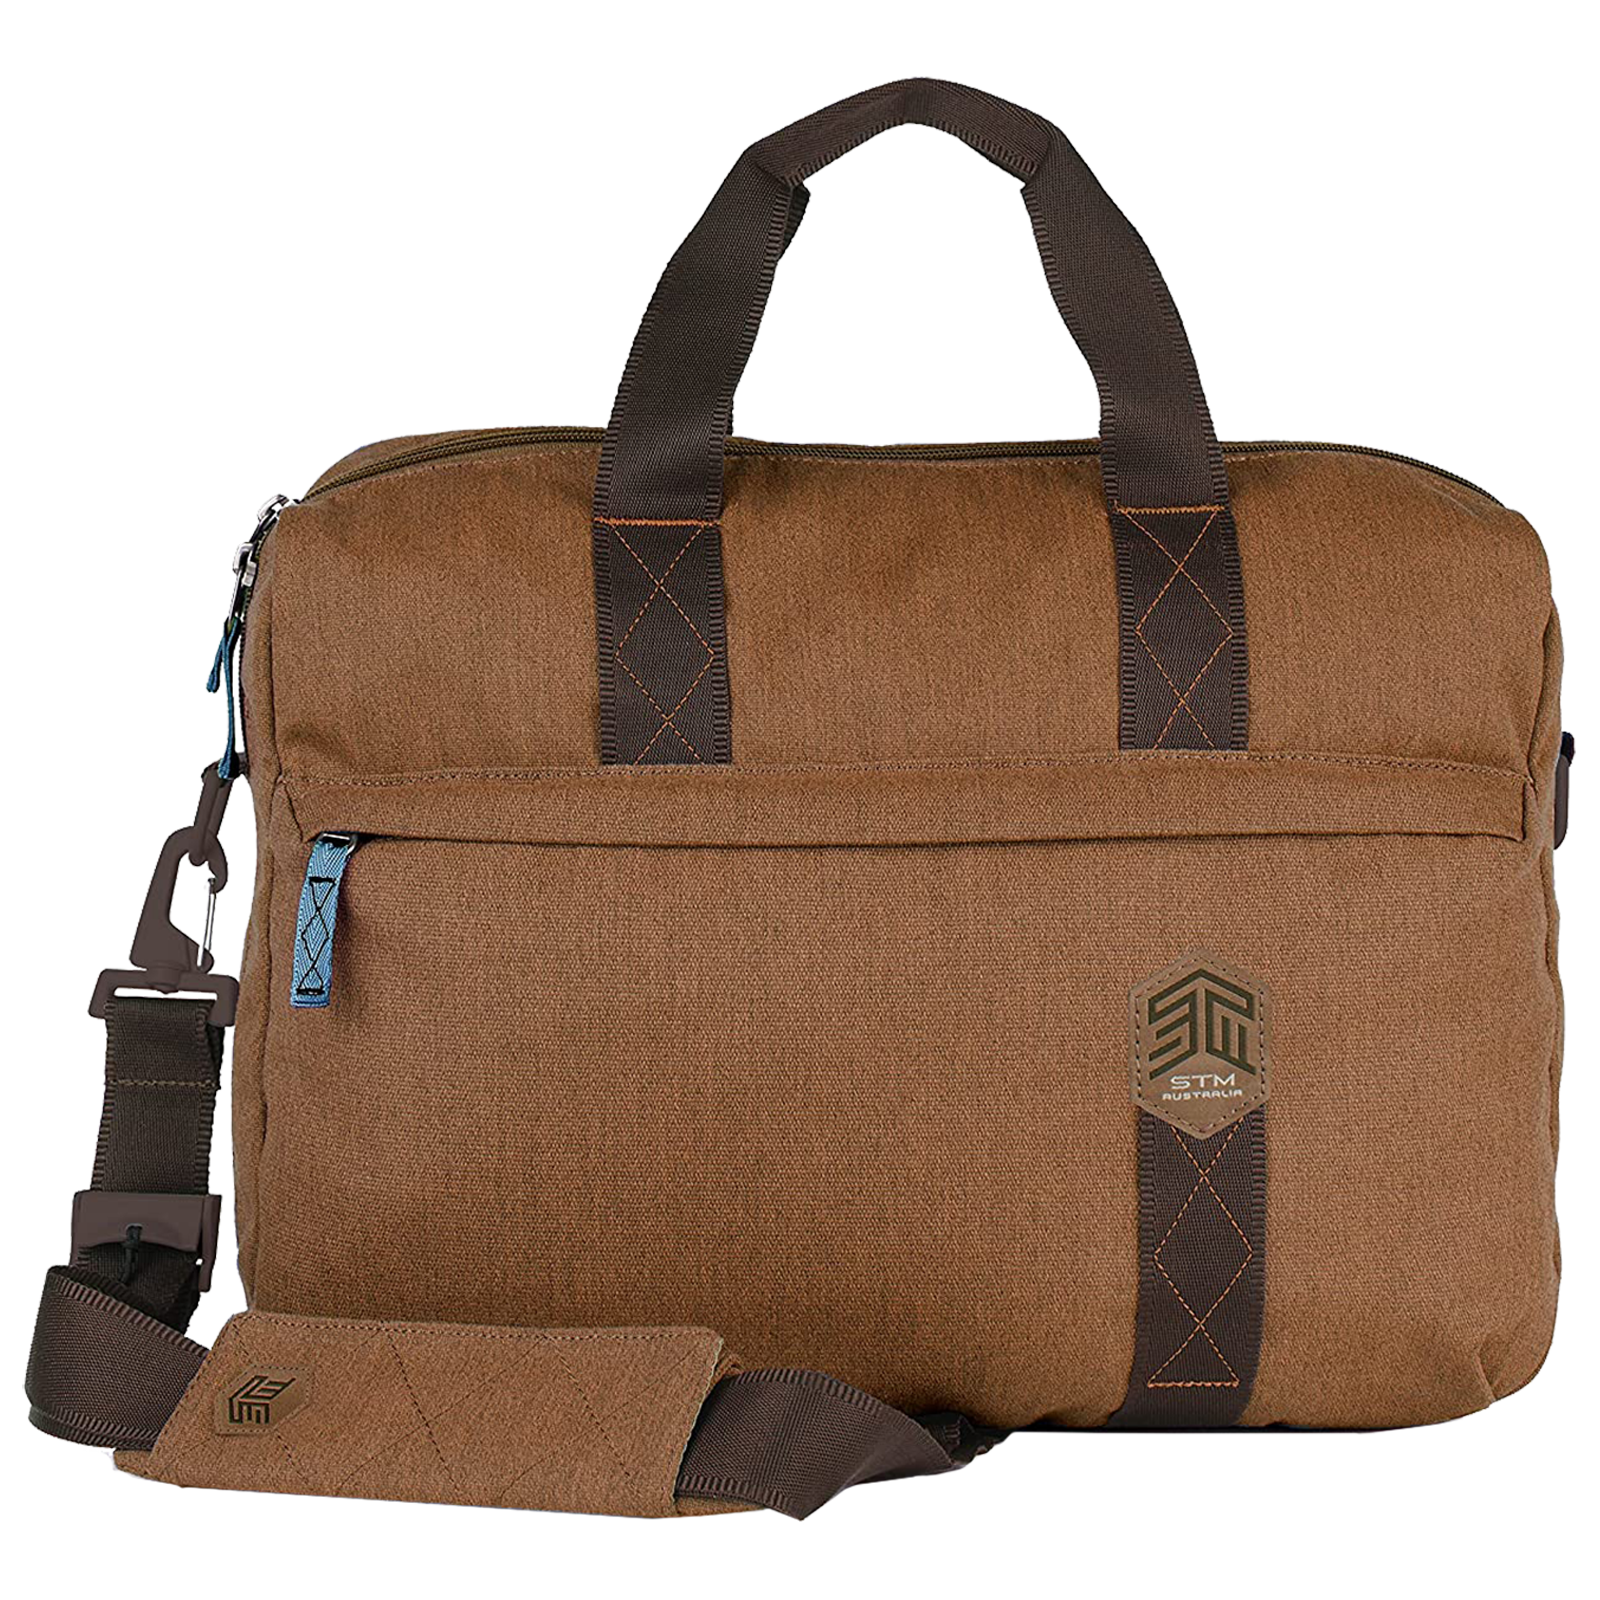 STM Judge Brief 14 Litres Polyester Carry Case for 15 Inch Laptop (Water Resistant, STM-112-147P-10, Brown)_1